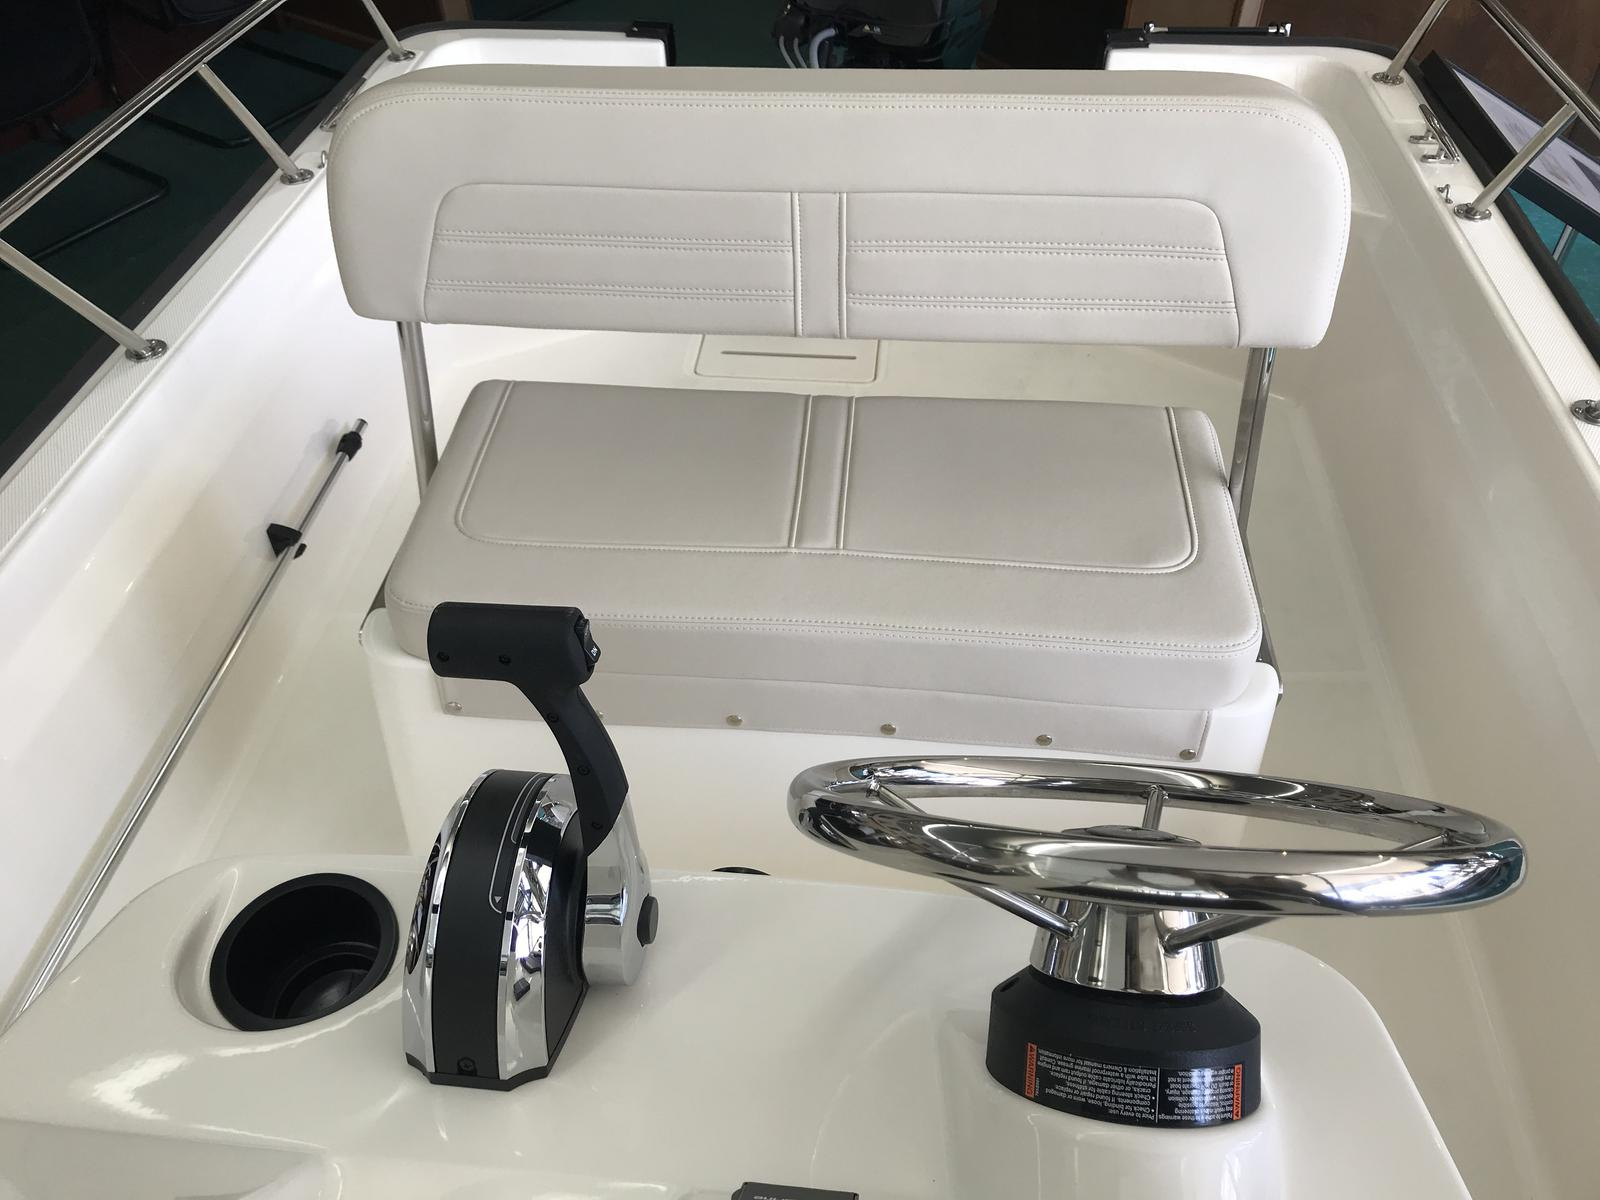 2019 Boston Whaler boat for sale, model of the boat is 150 Montauk & Image # 2 of 11